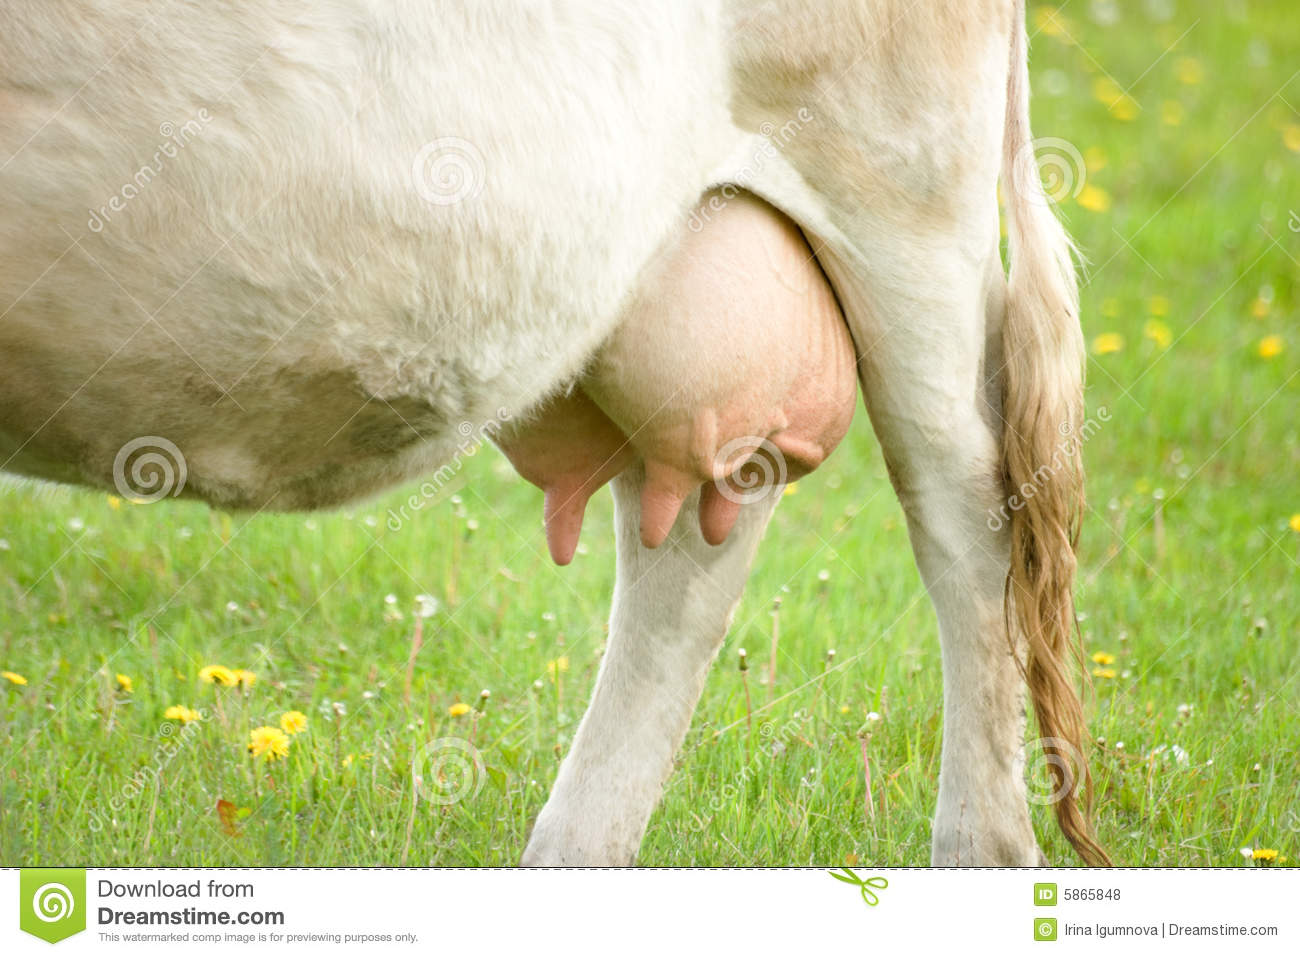 Cow udder stock photo. Image of farming, agricultural ...